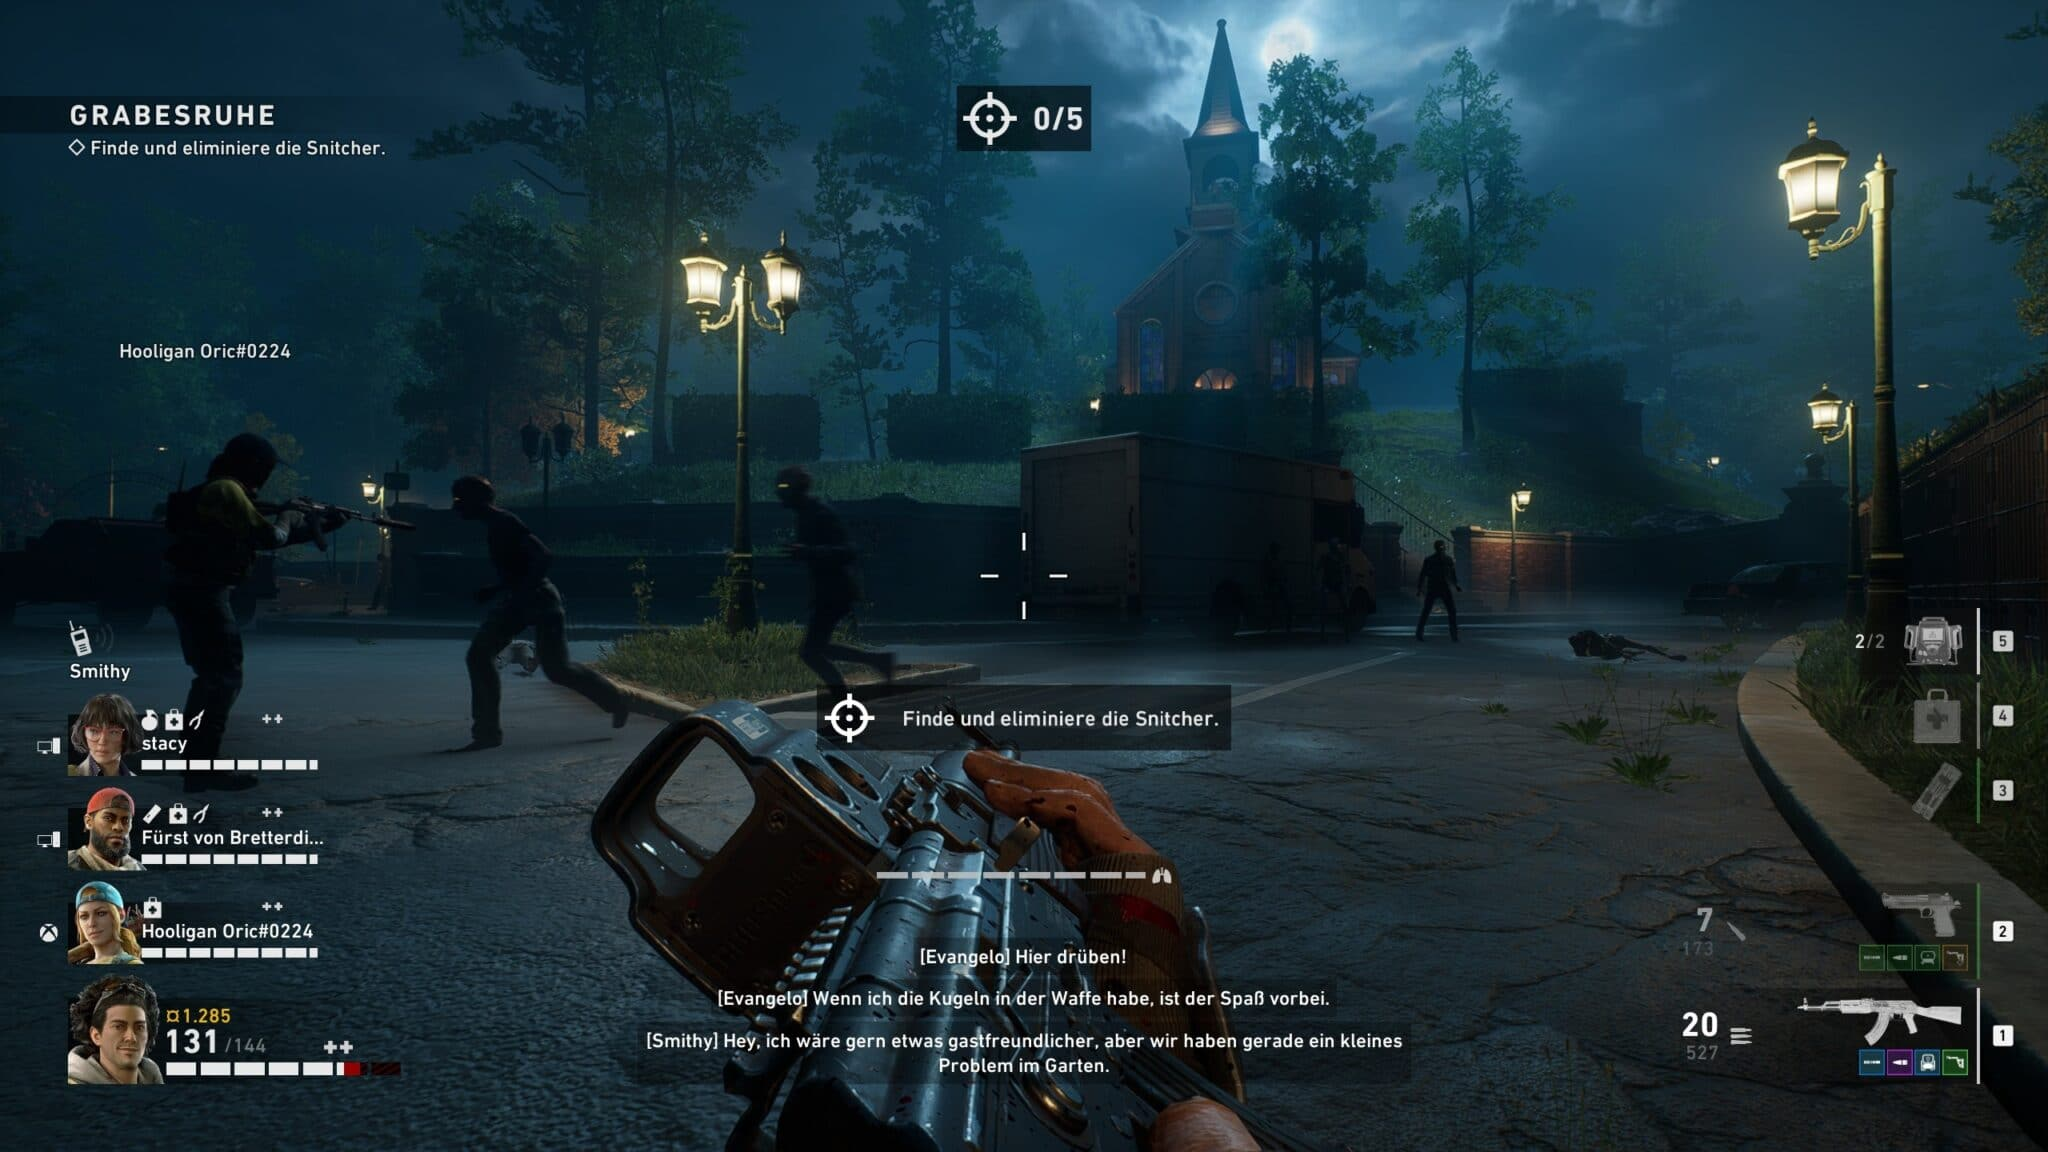 The lighting mood contributes significantly to the atmosphere. Scenes like this are often found in the game and give Back 4 Blood an eerie feel.